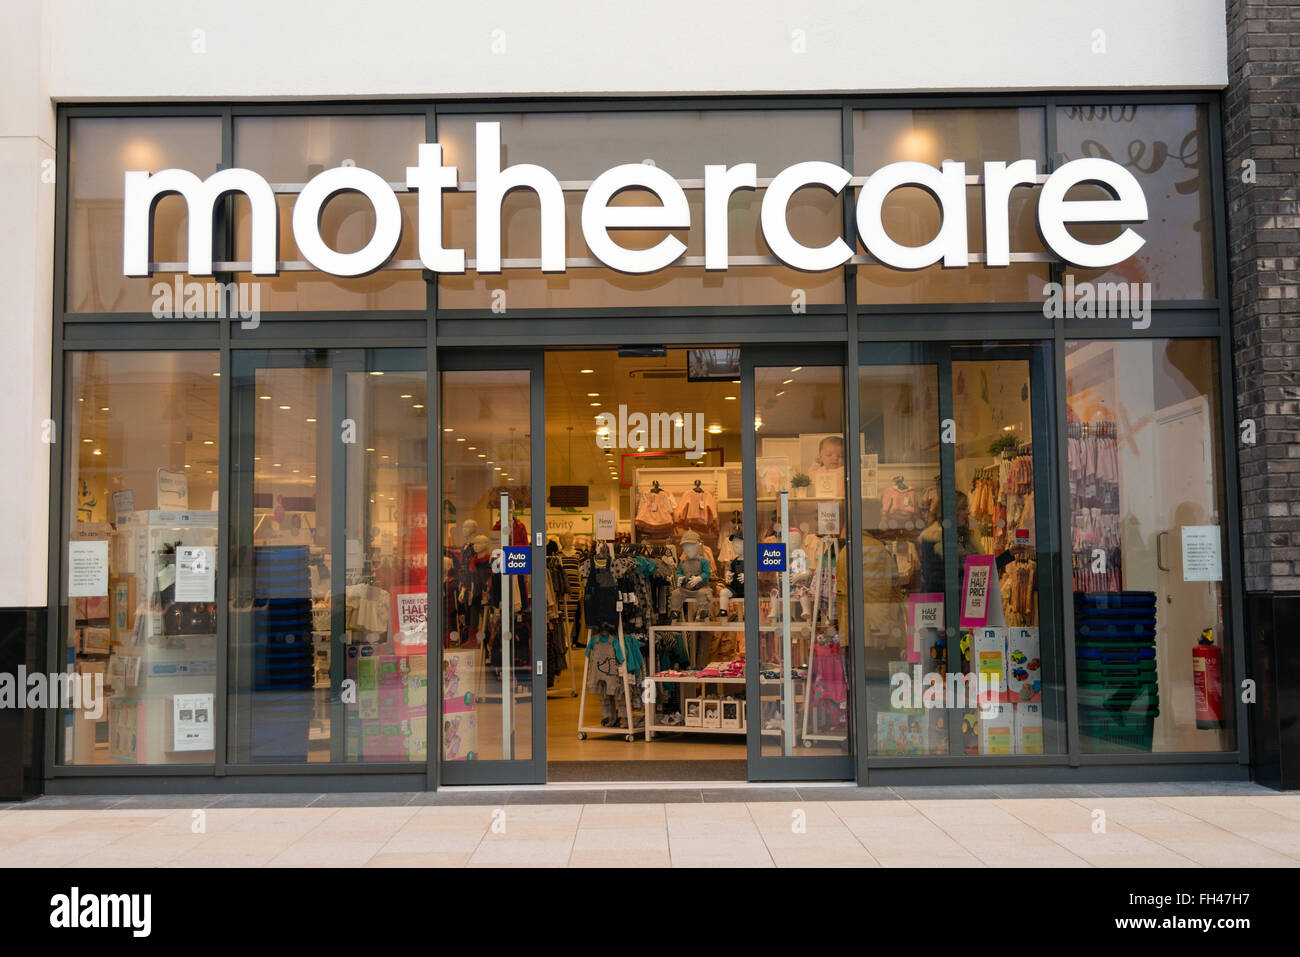 Mothercare store, UK. - Stock Image